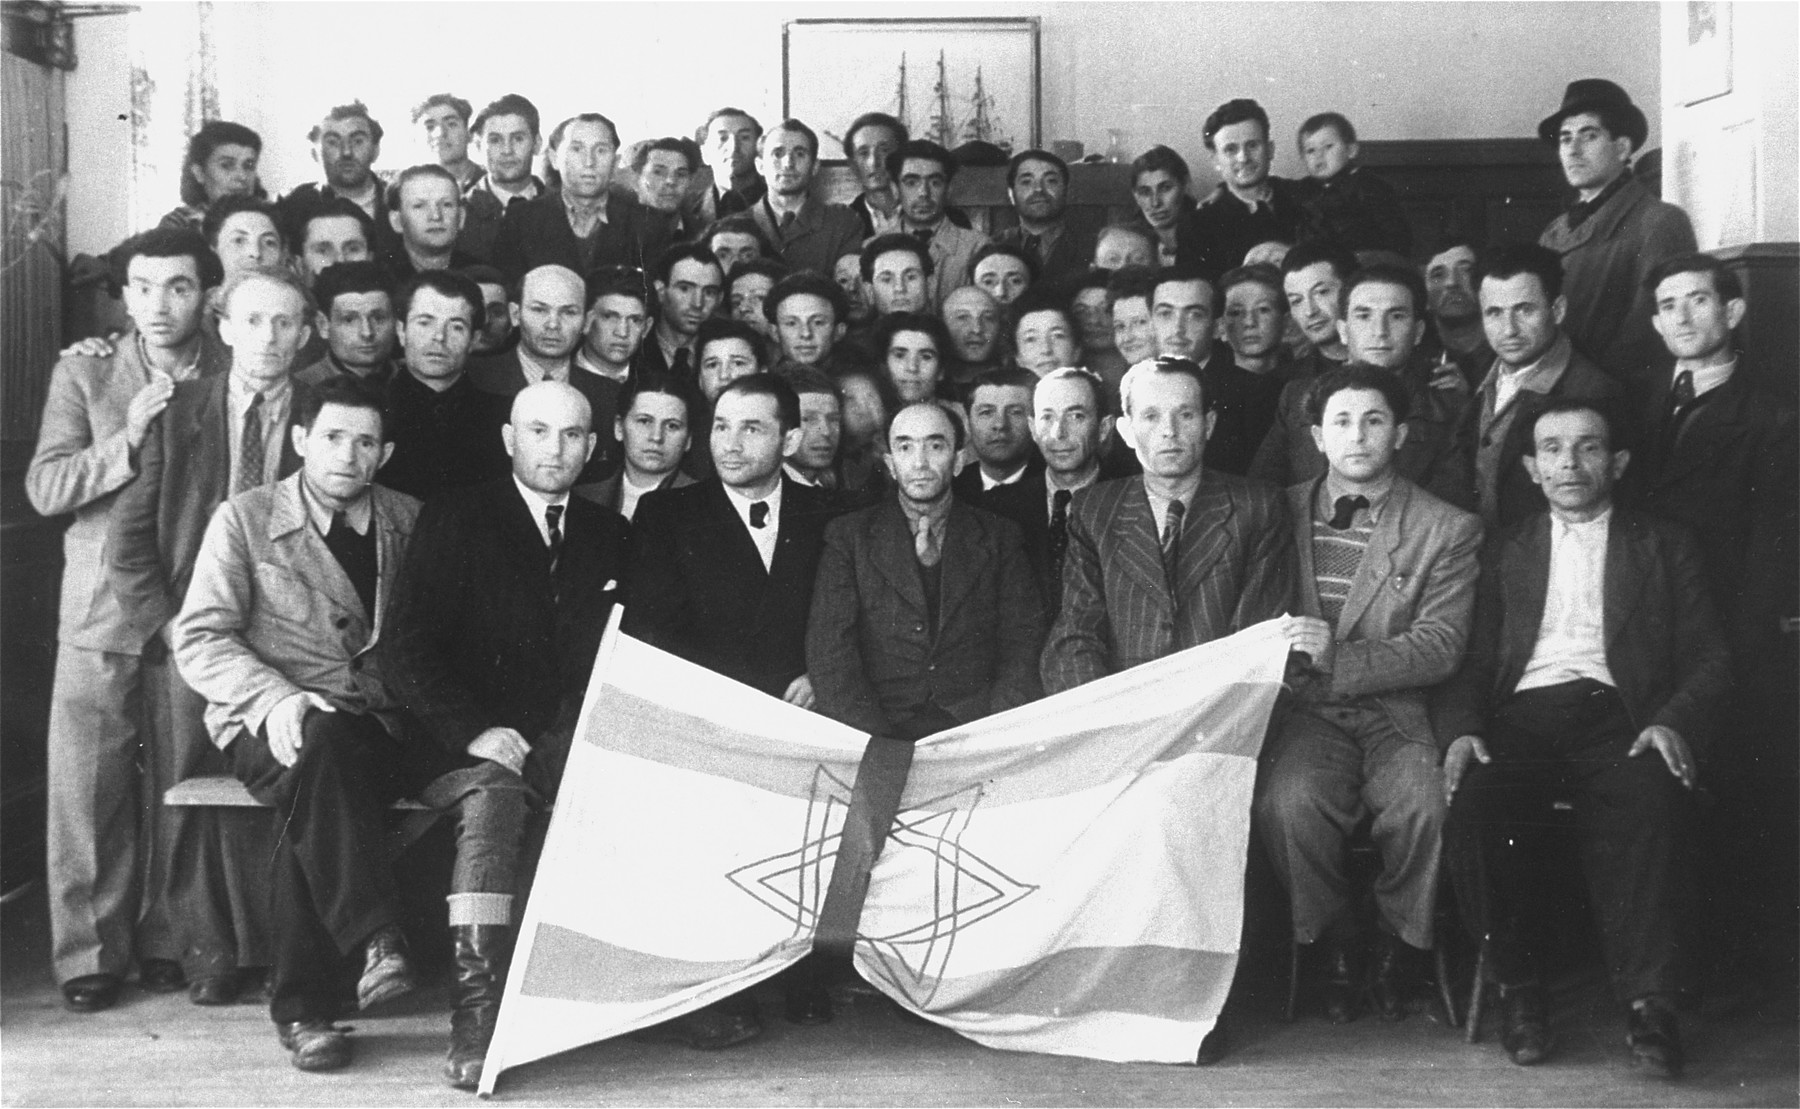 Group portrait of Jewish displaced persons holding a Zionist flag.  (Possibly a reunion of survivors from Lukow, Poland)